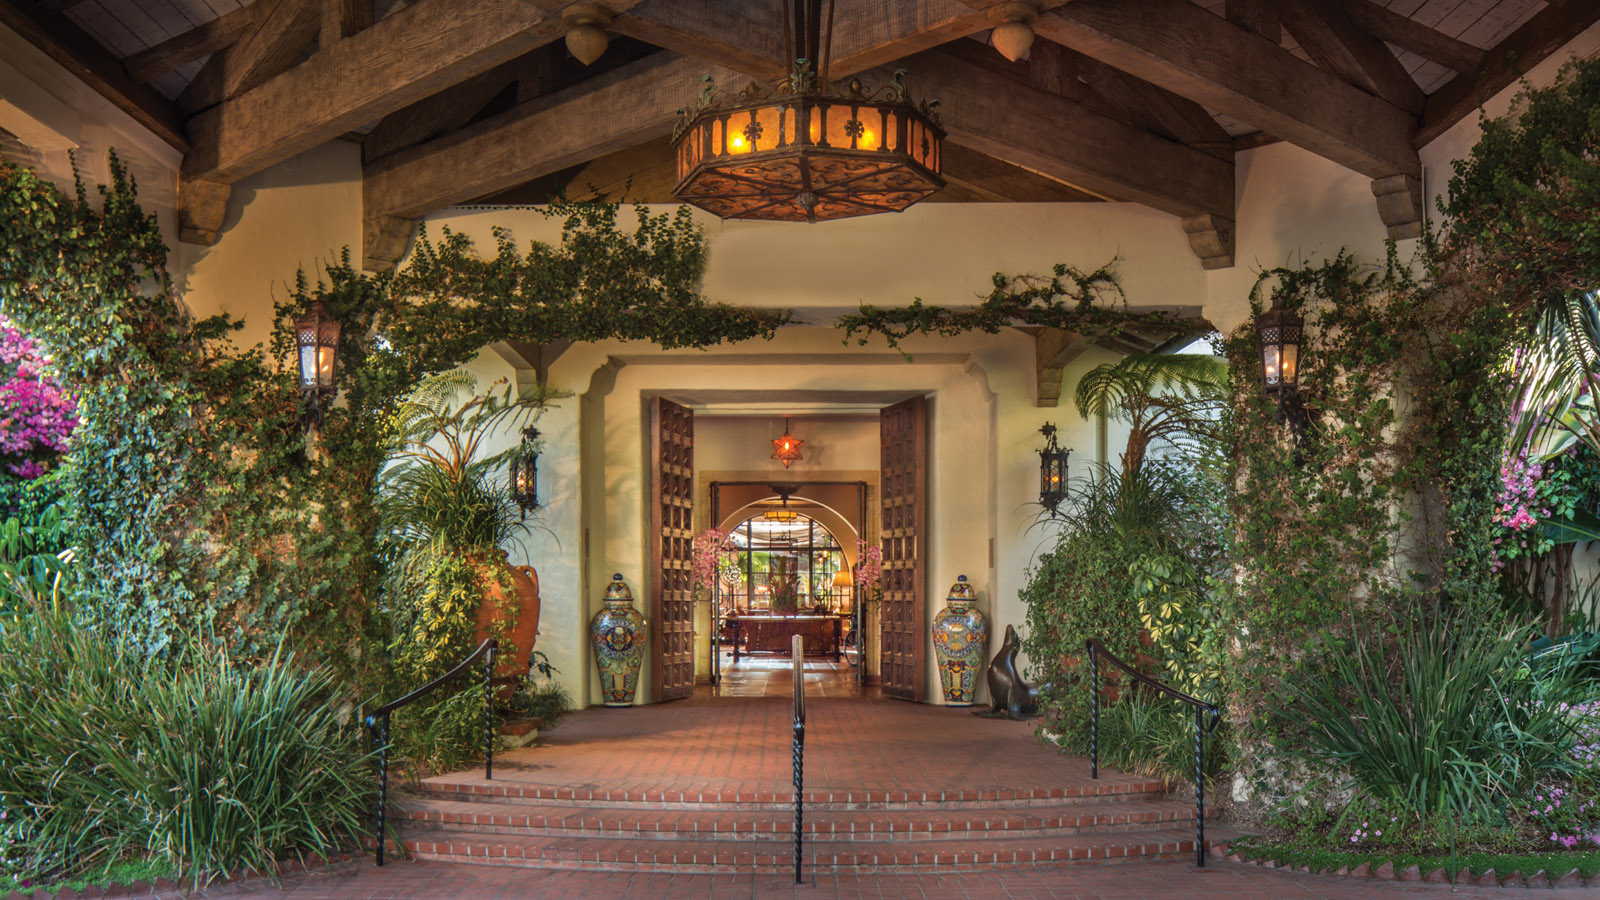 Santa Barbara Event Venues & Meeting Space | Four Seasons Hotel